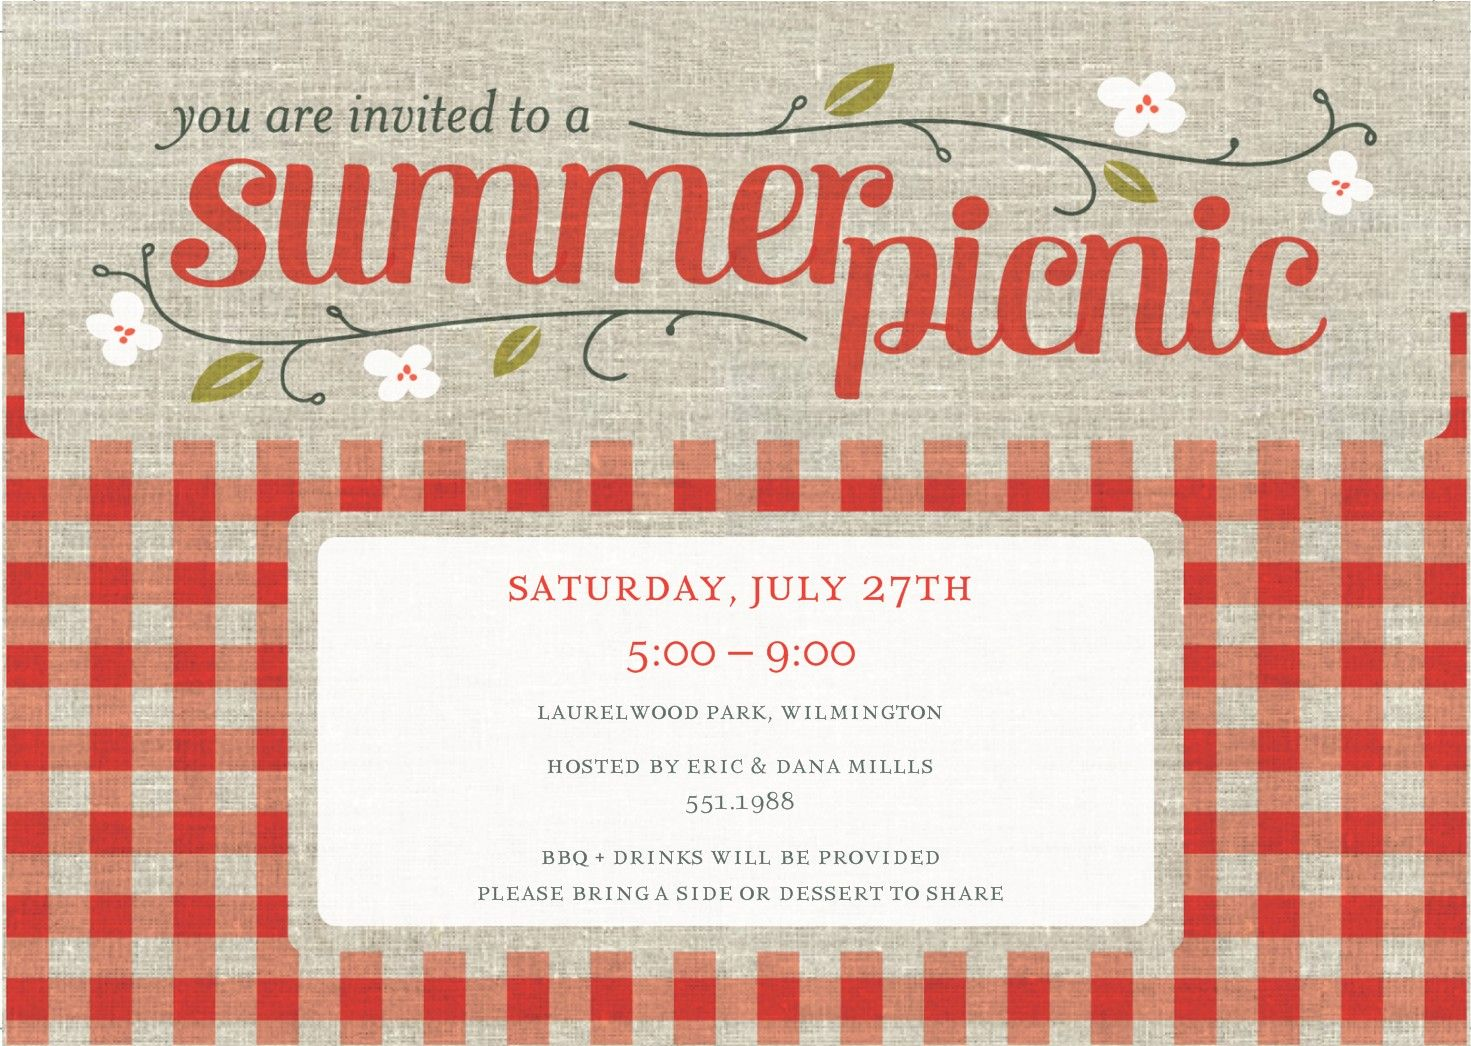 Charming Free+Company+Picnic+Party+Invitation+Template Intended For Company Party Invitation Templates